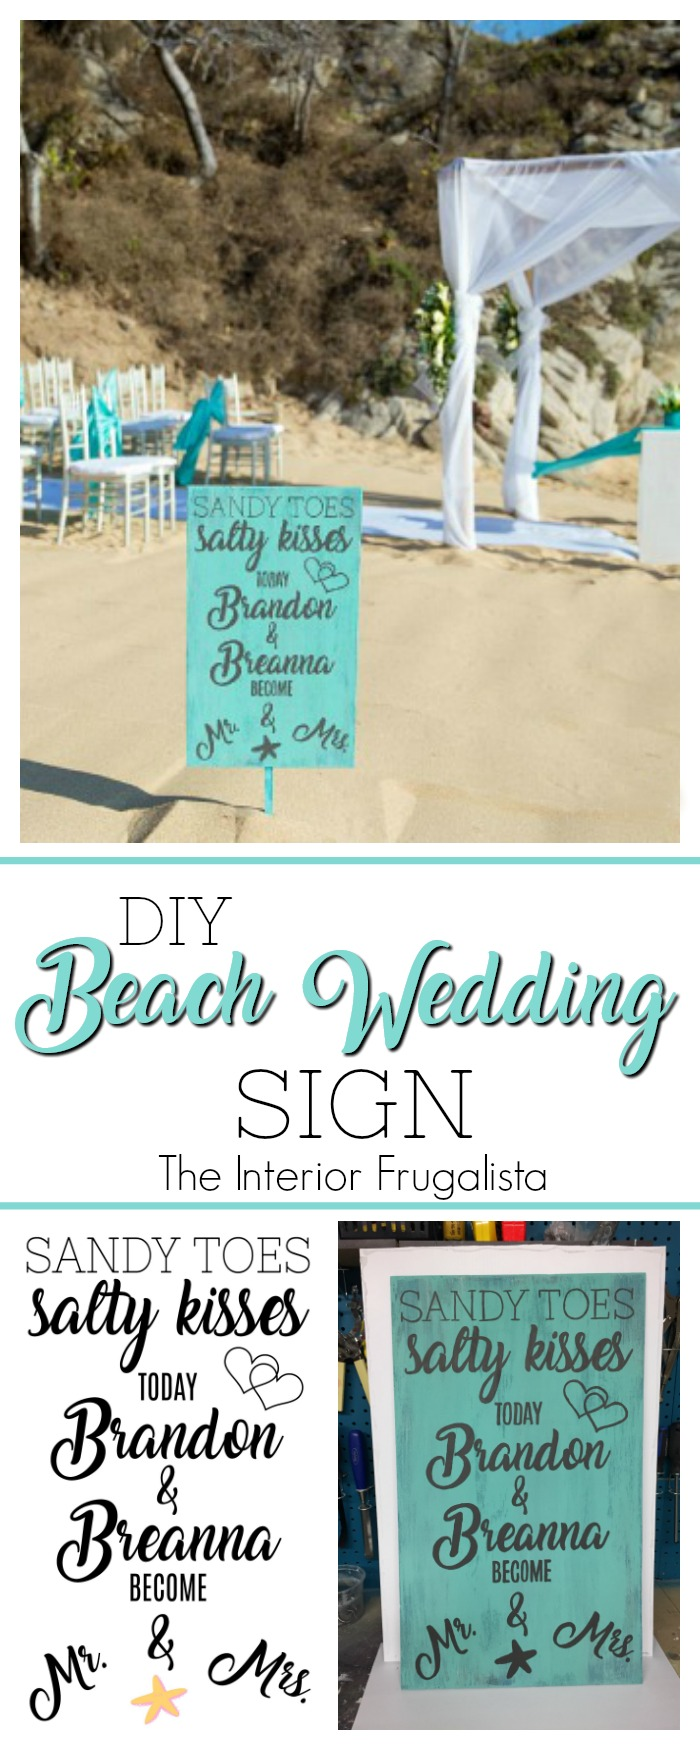 Planning a beach destination wedding? Here's a fun idea for a DIY Beach Wedding Sign that can fit in a suitcase and be assembled at the resort. #diyweddingdecor #weddingsign #destinationweddingidea #beachweddingsign